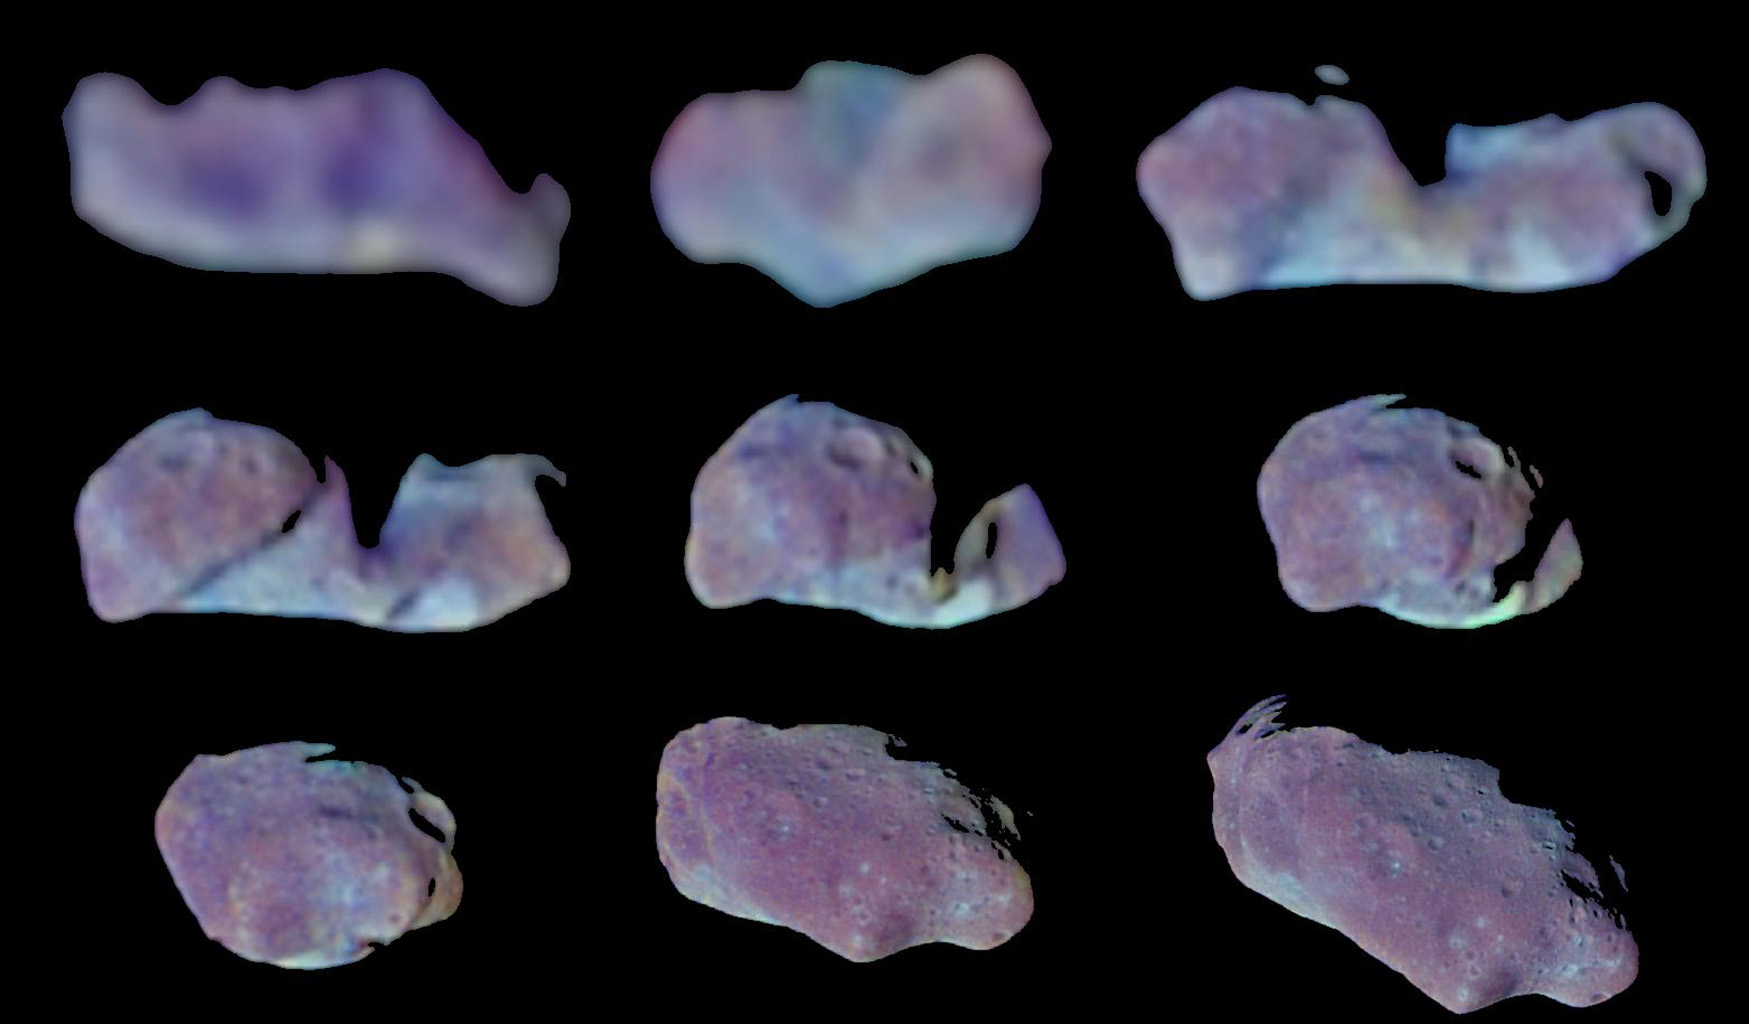 This set of color images of asteroid 243 Ida was taken by the imaging system on NASA's Galileo spacecraft as it approached and raced past the asteroid on August 28, 1993.